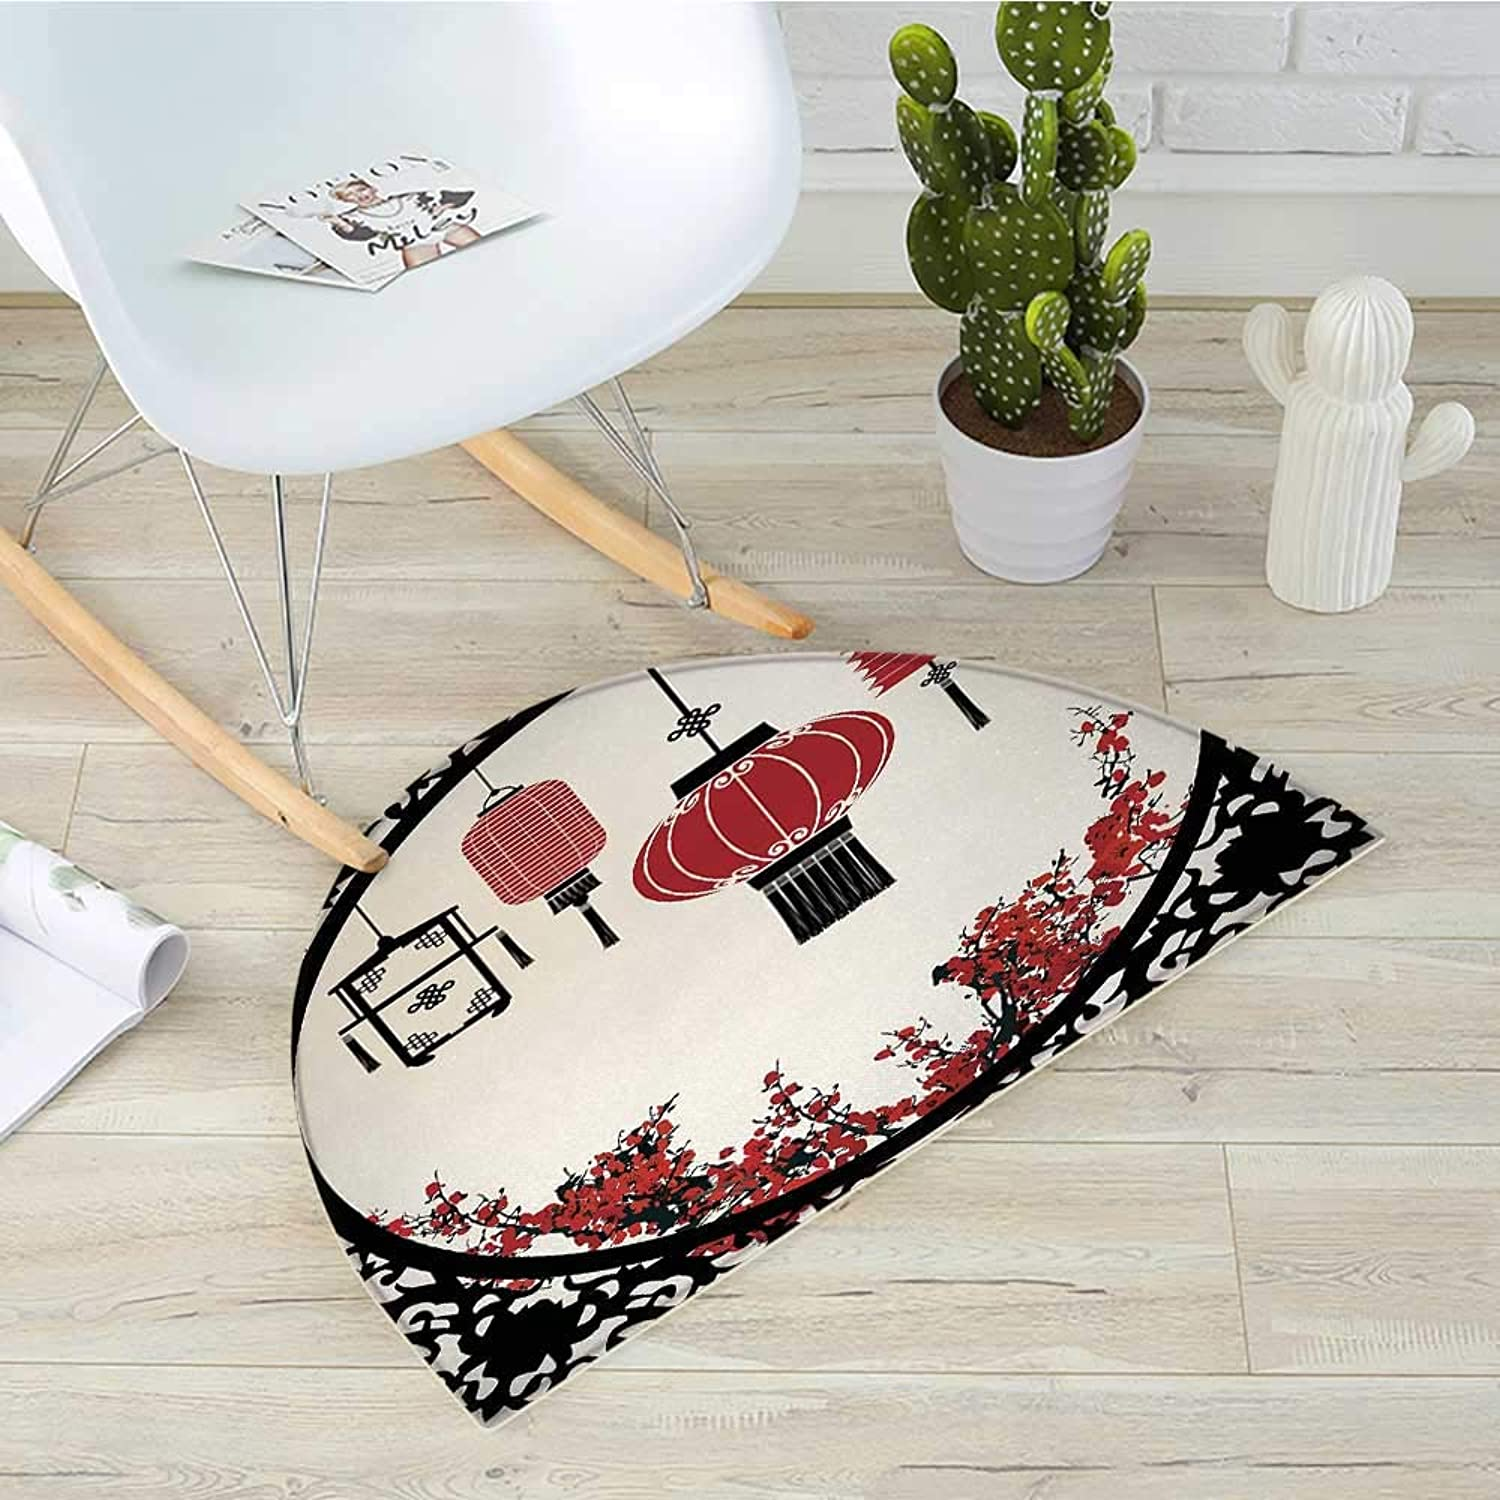 Lantern Semicircular CushionLanterns with Japanese Sakura Cherry Blossom Trees Round Ornate Figure Graphic Entry Door Mat H 39.3  xD 59  Red Beige Black